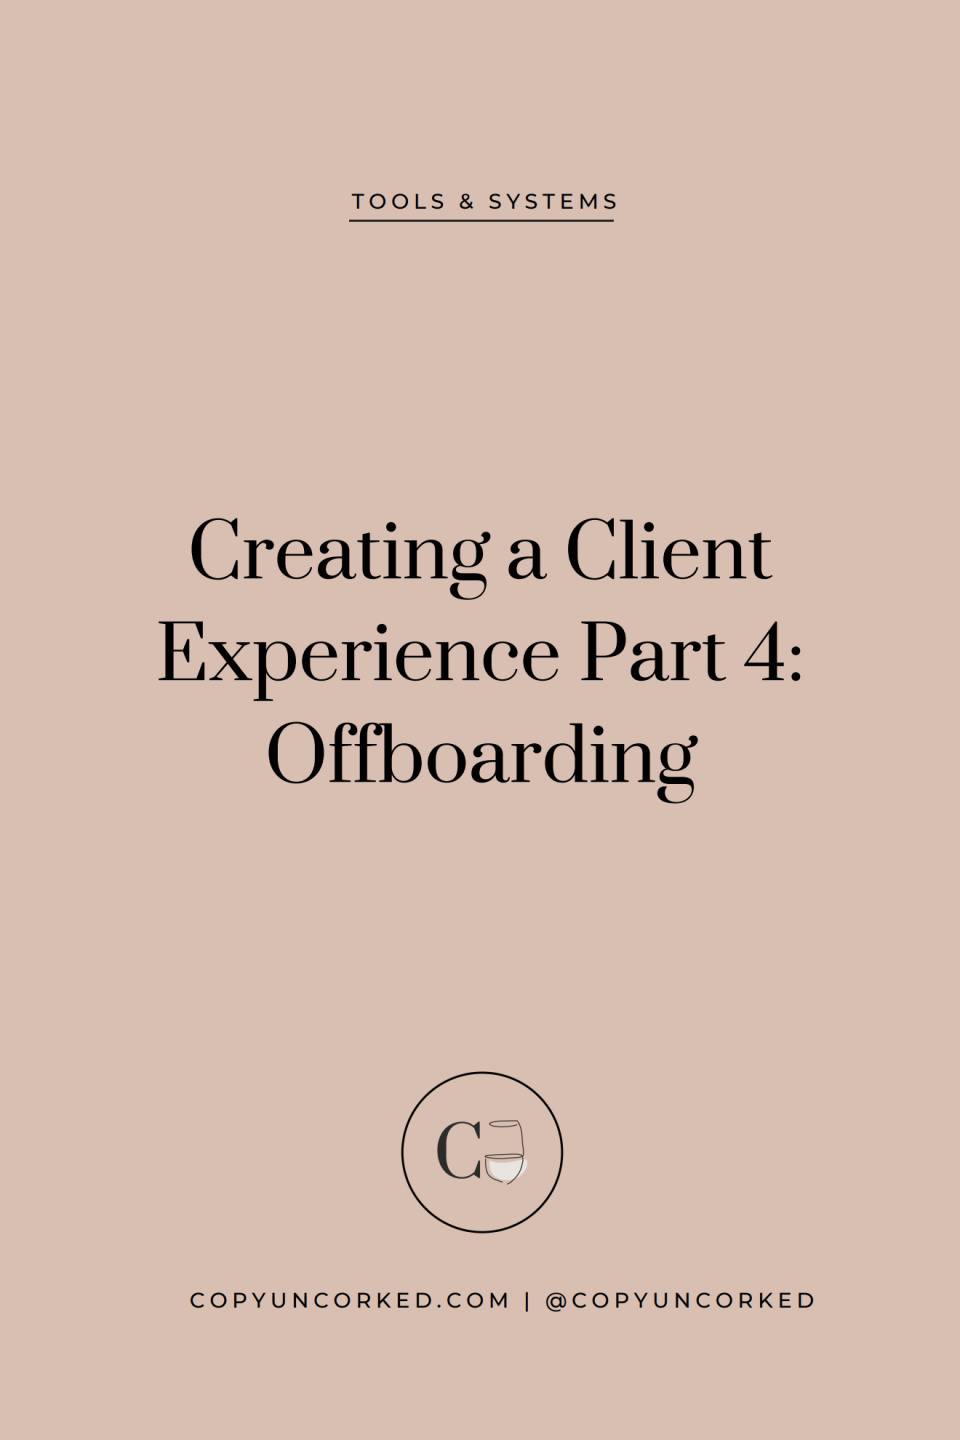 Client a Client Experience Part 4: Offboarding - copyuncorked.com - The CU Blog